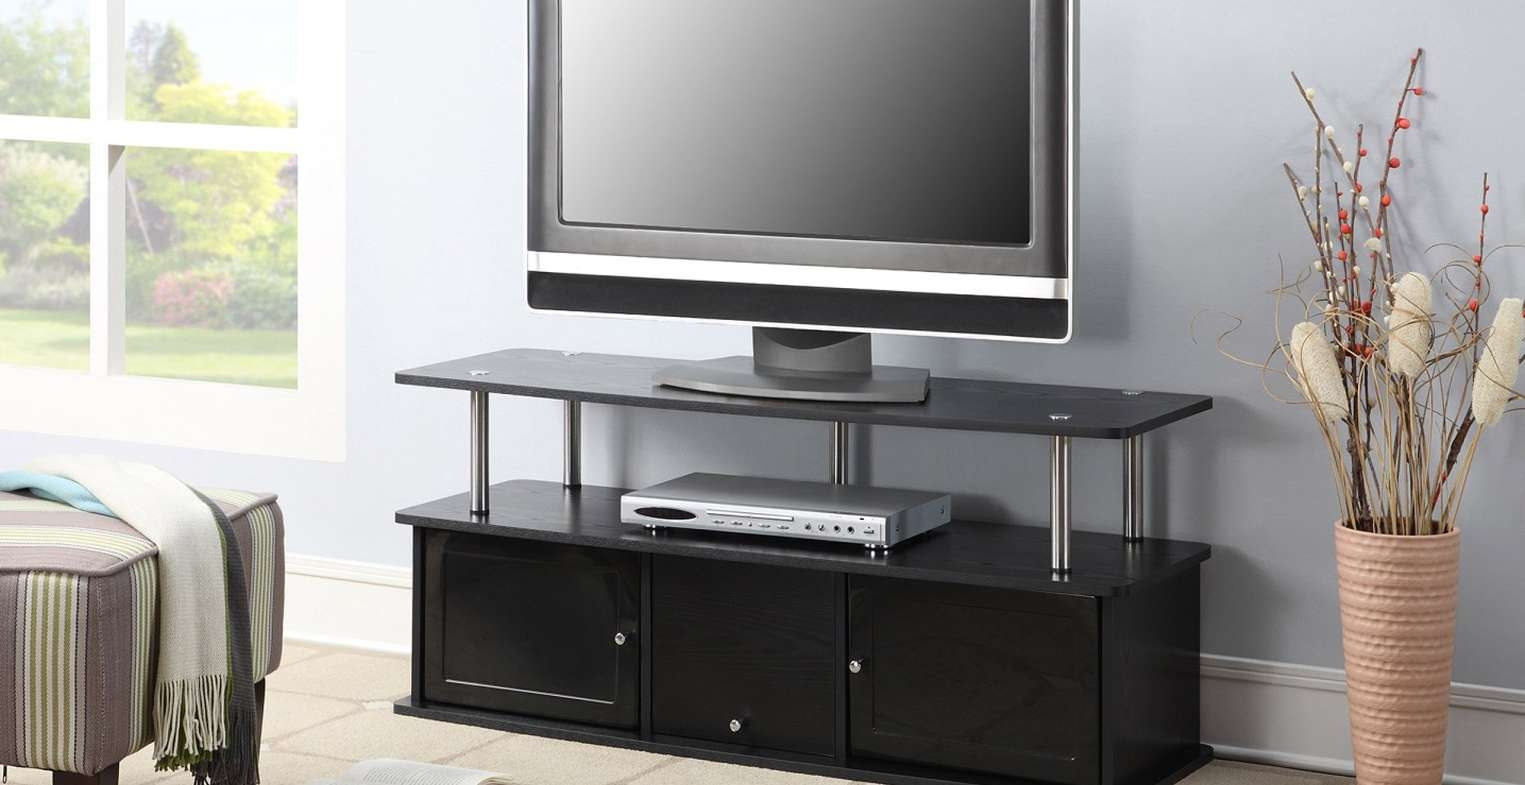 Tv : Tv Stands For Tube Tvs Top Tv Stands For Crt Tvs' Favorite Tv Regarding Tv Stands For Tube Tvs (View 6 of 15)